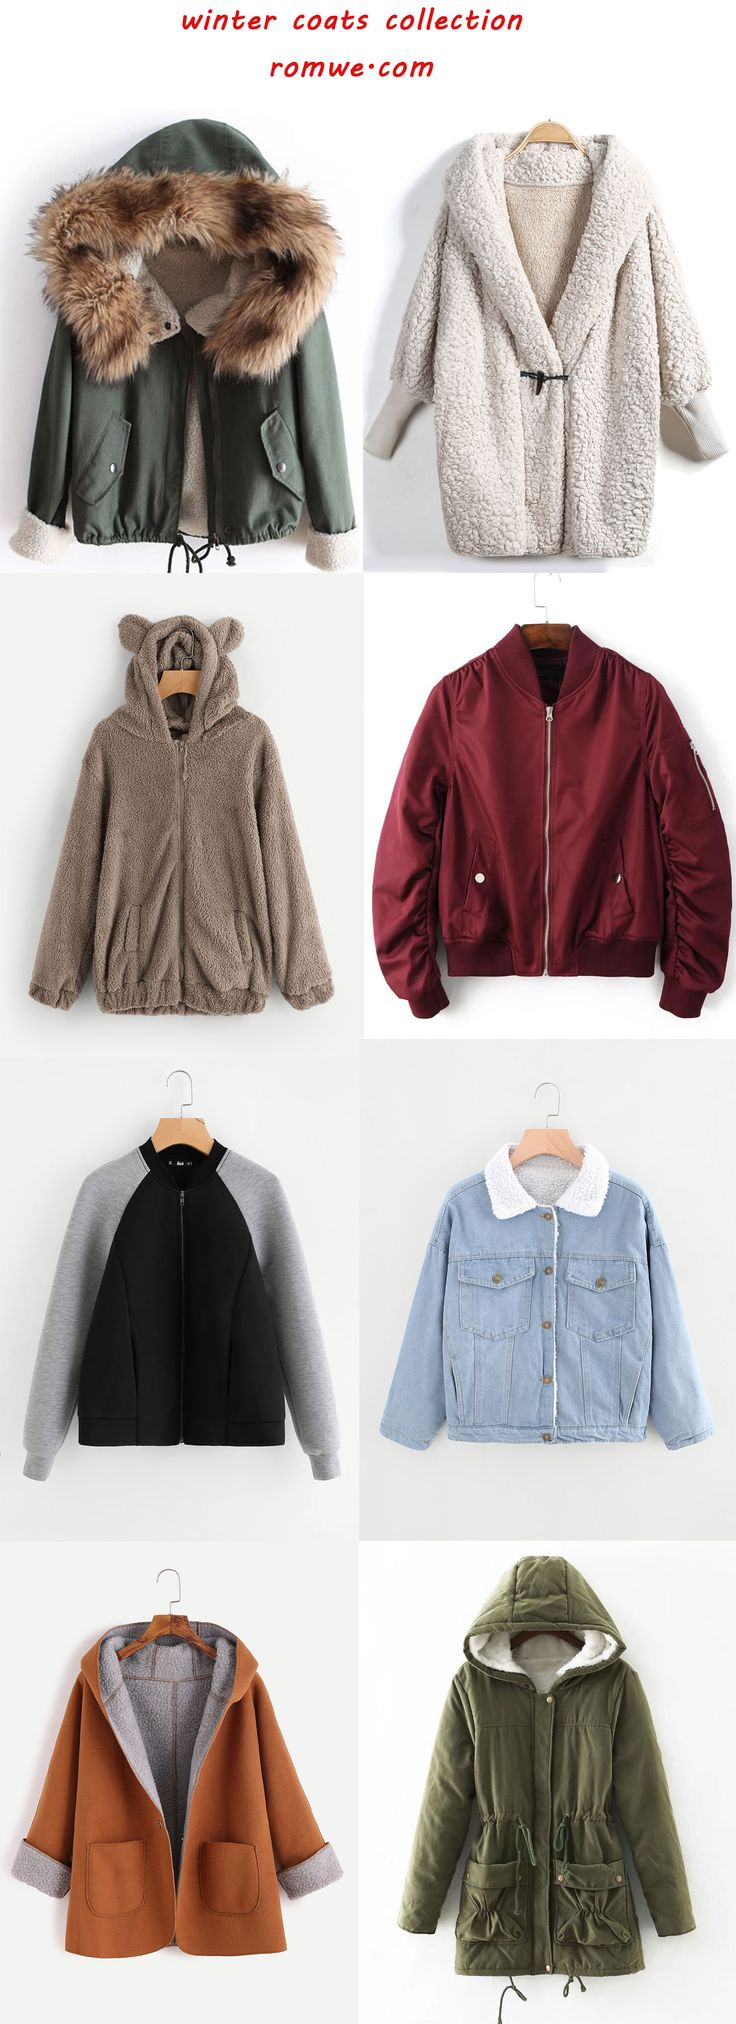 winter coats collection 2017 - romwe.com